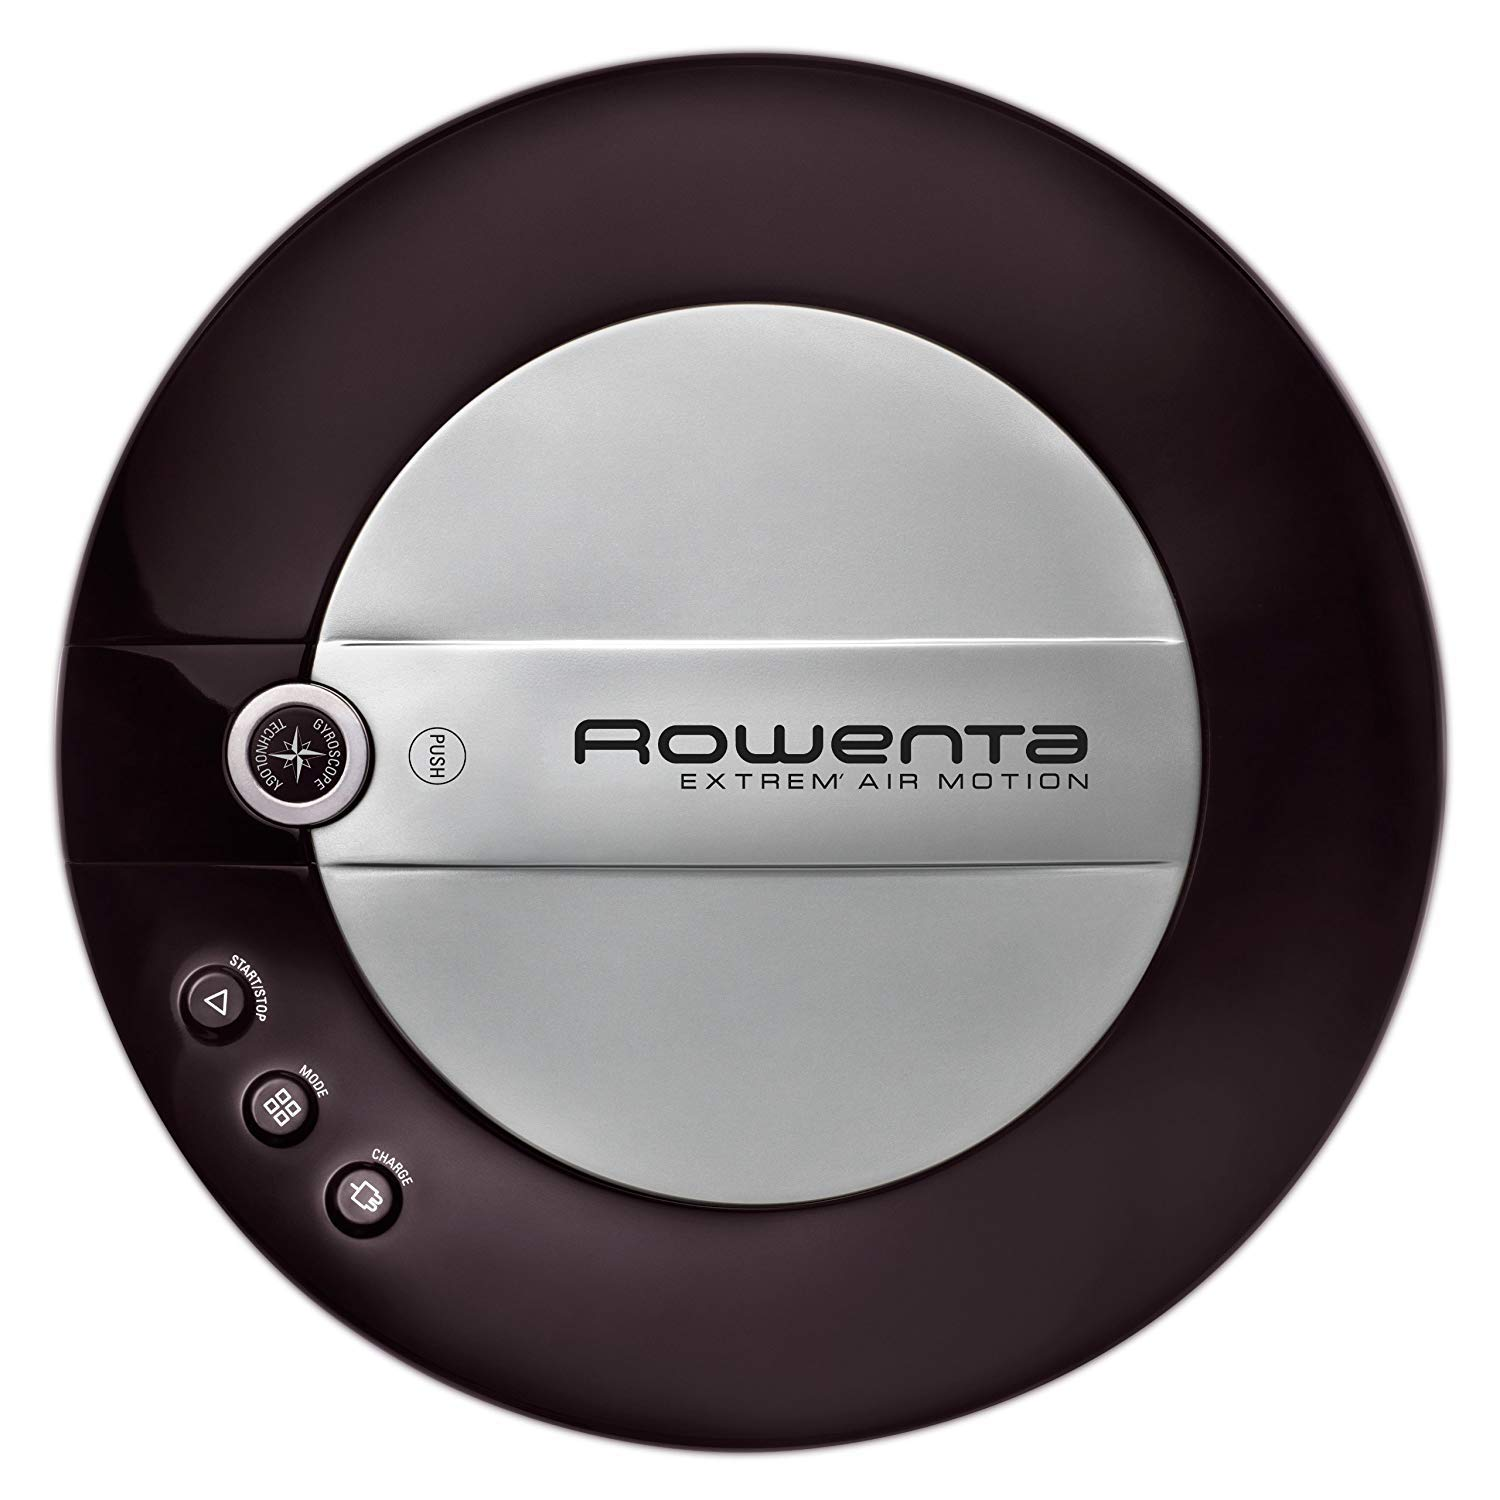 Rowenta Extreme Air Motion Iconic Black - Robot aspirador (flujo de aire 6 l/s), color negro (Reacondicionado Certificado): Amazon.es: Hogar